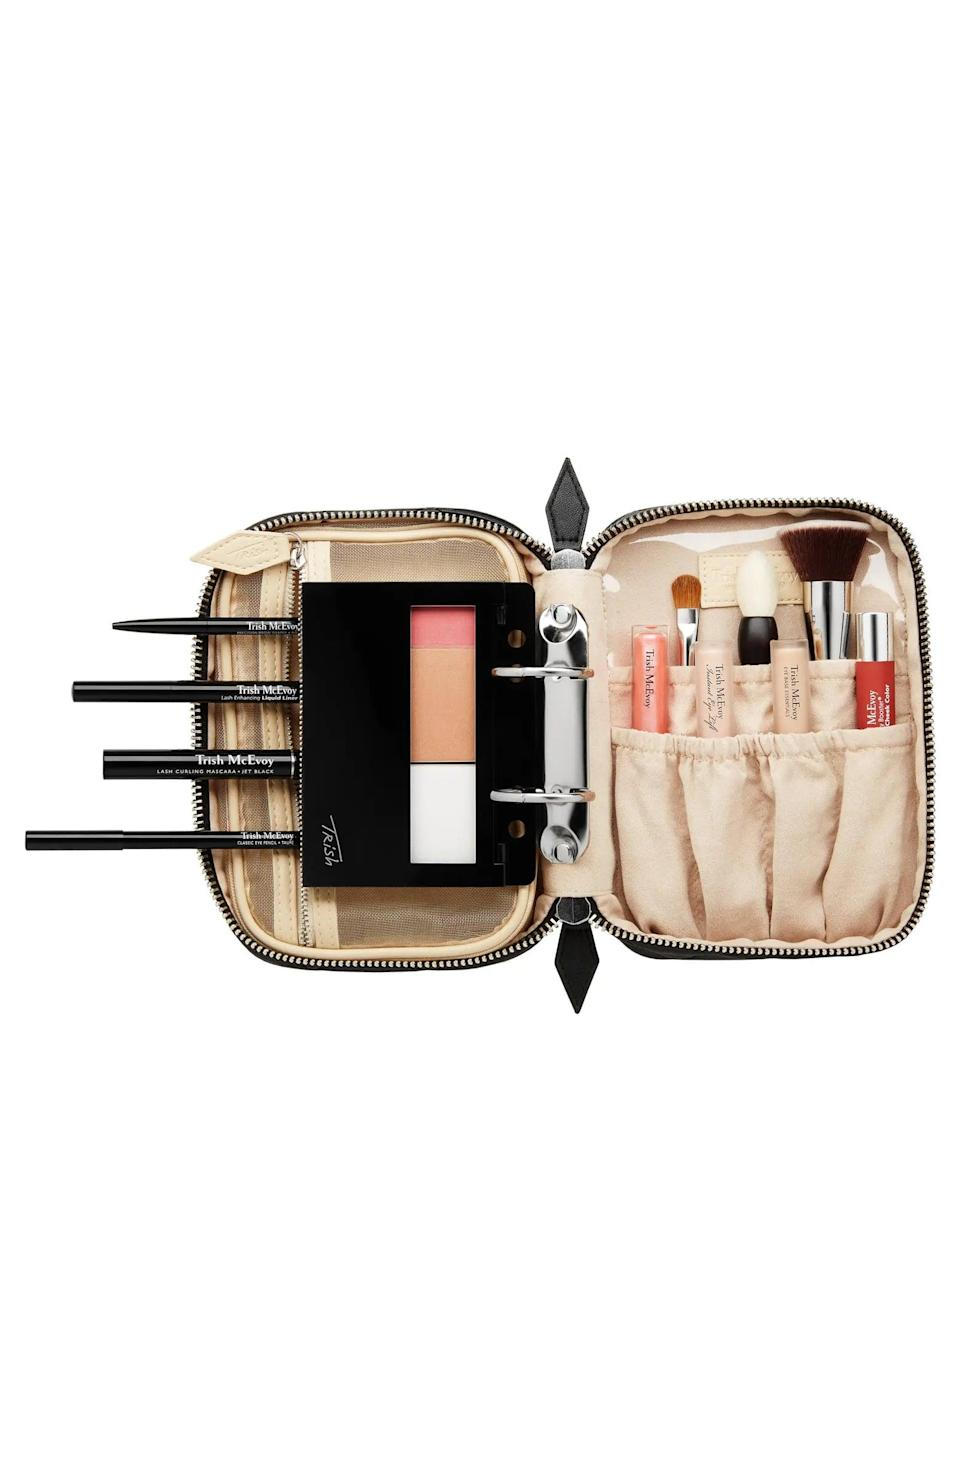 <p>Makeup-lovers will adore having this handy and organized <span>Trish McEvoy The Power of Makeup Medium Makeup Planner</span> ($82).</p>